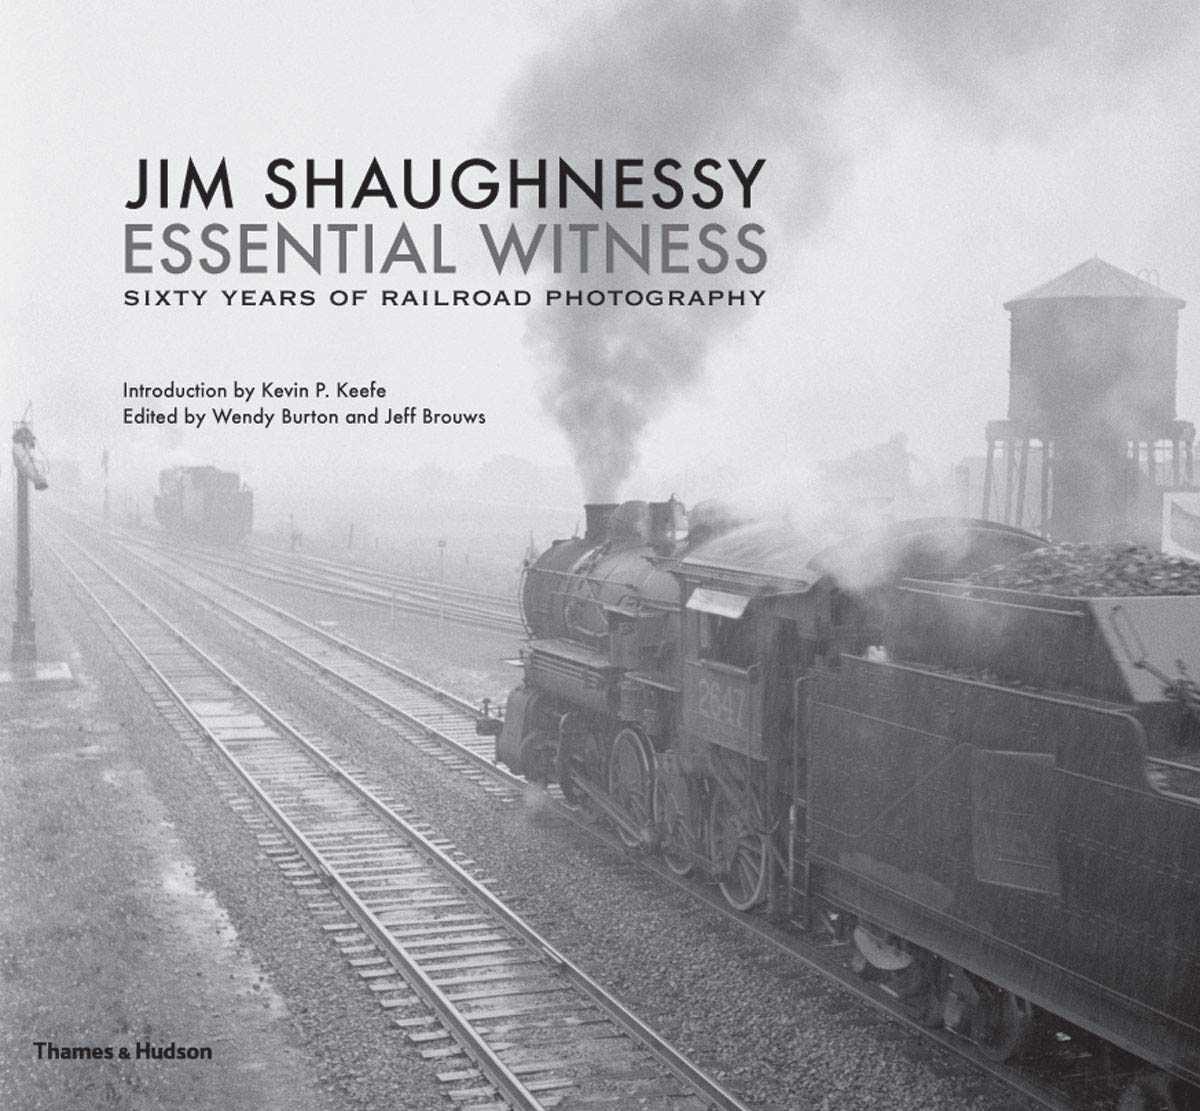 Image OfJim Shaughnessy Essential Witness: Sixty Years Of Railroad Photography